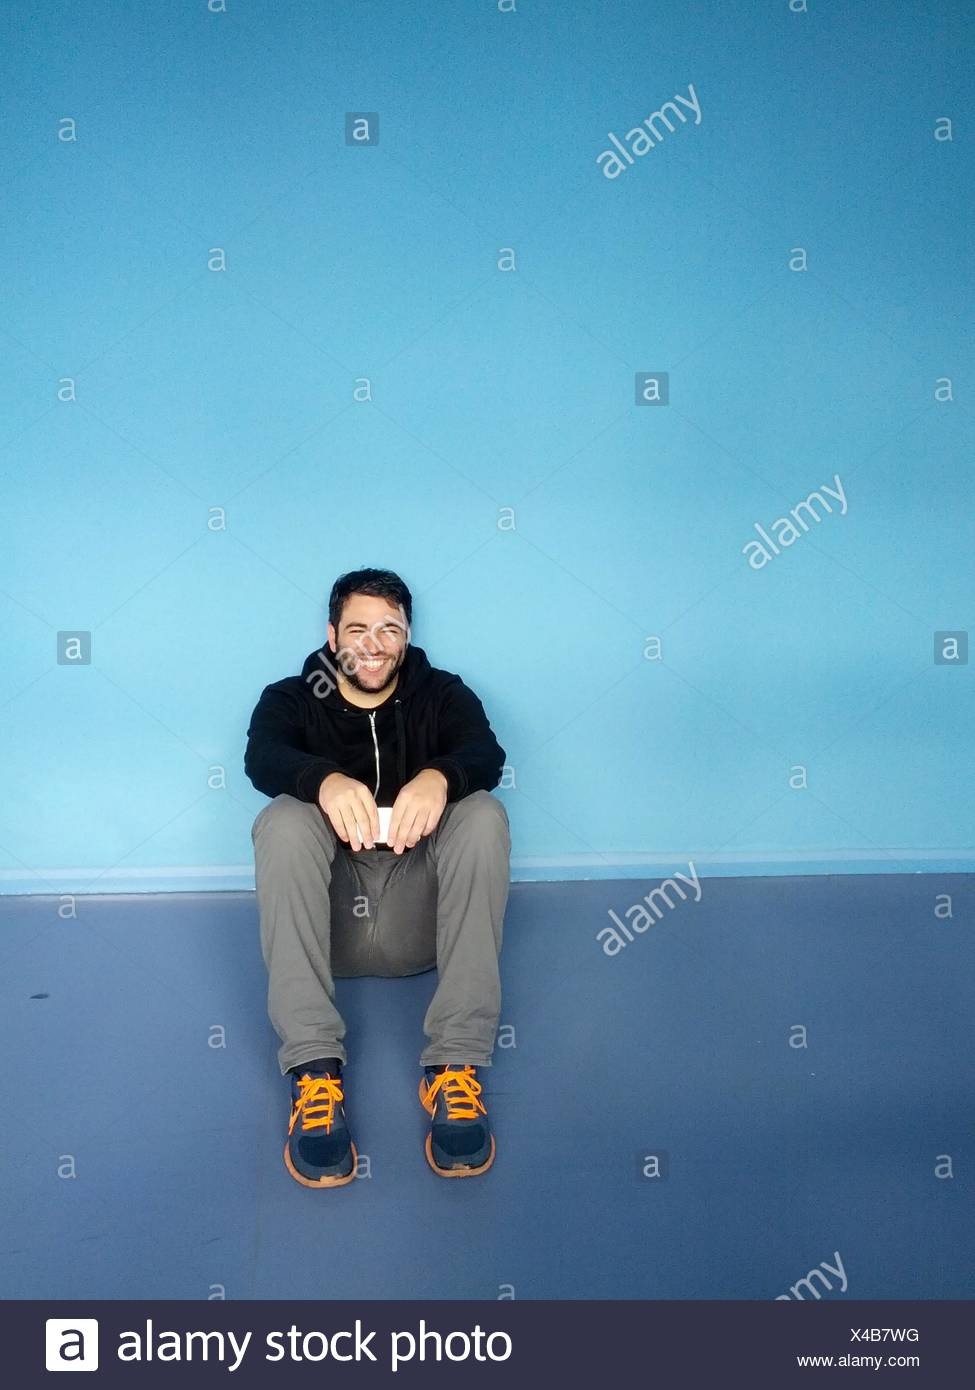 Portrait Of A Smiling Young Man Sitting contre mur bleu Photo Stock